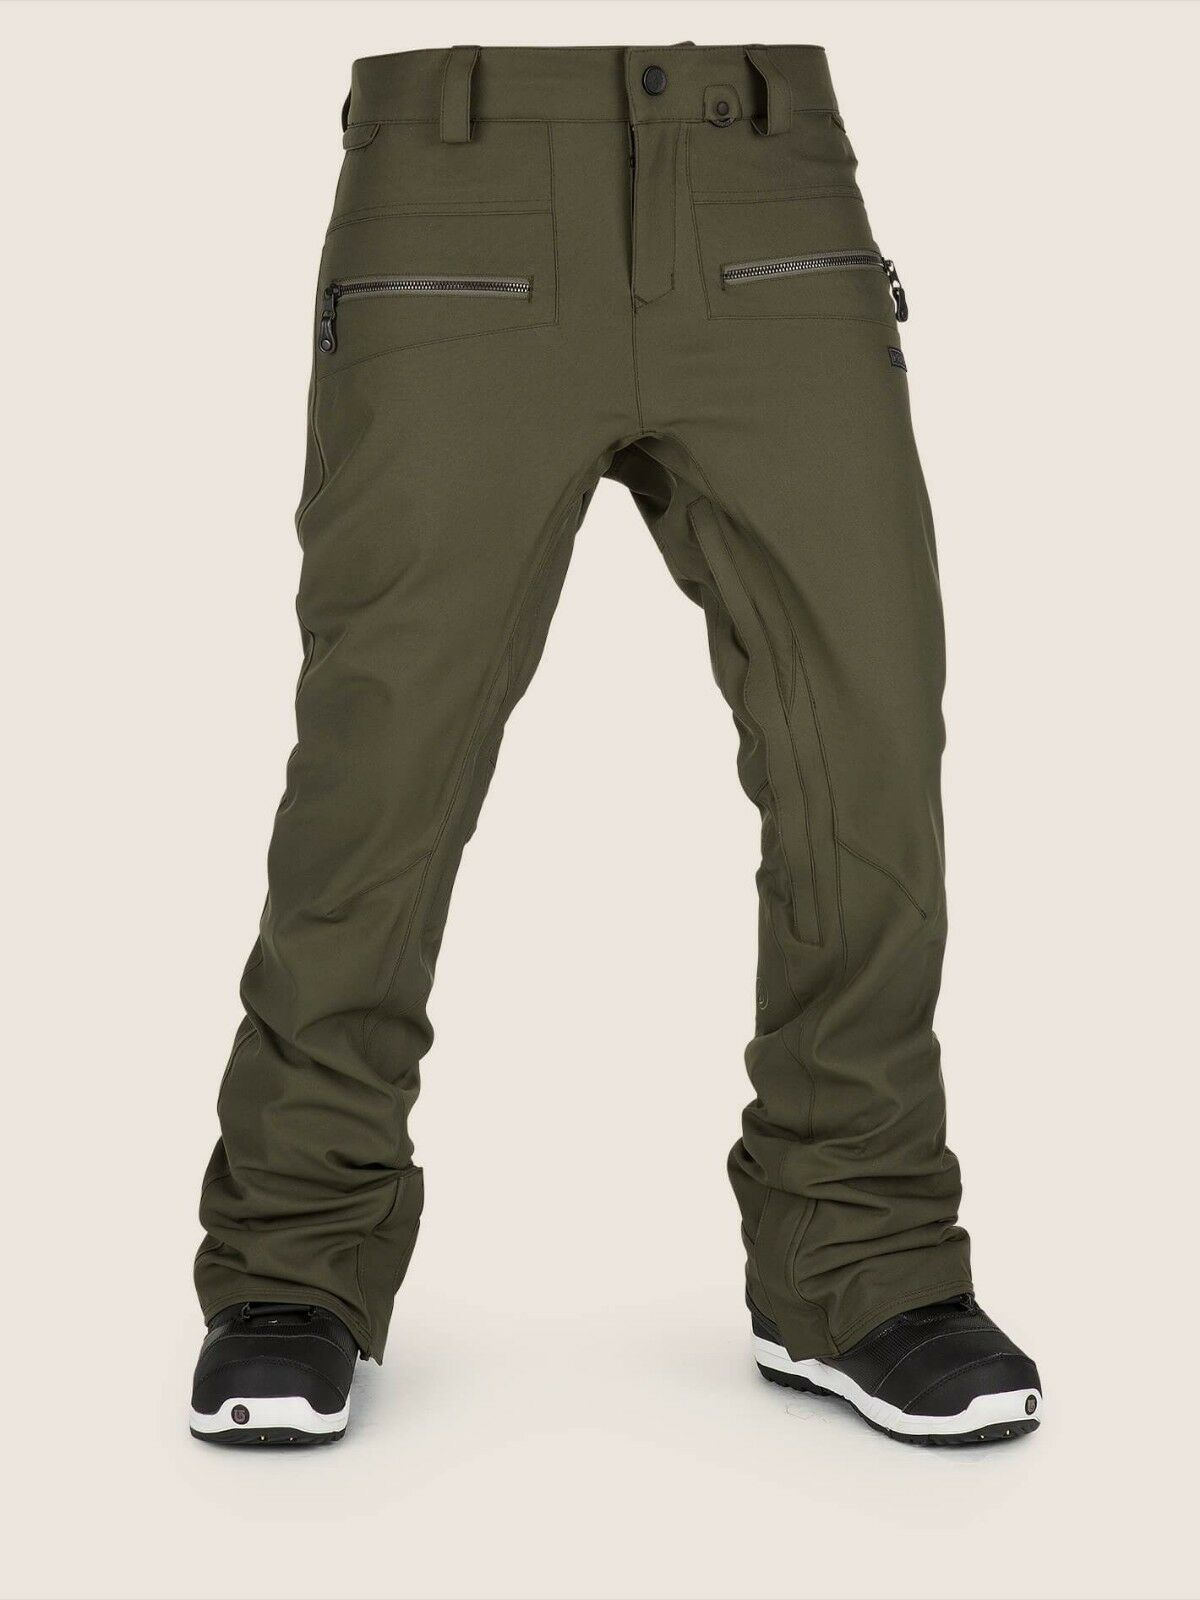 2019 NWT WOMENS VOLCOM IRON STRETCH PANT   180 S Forest dropped rise tapered fit  online store